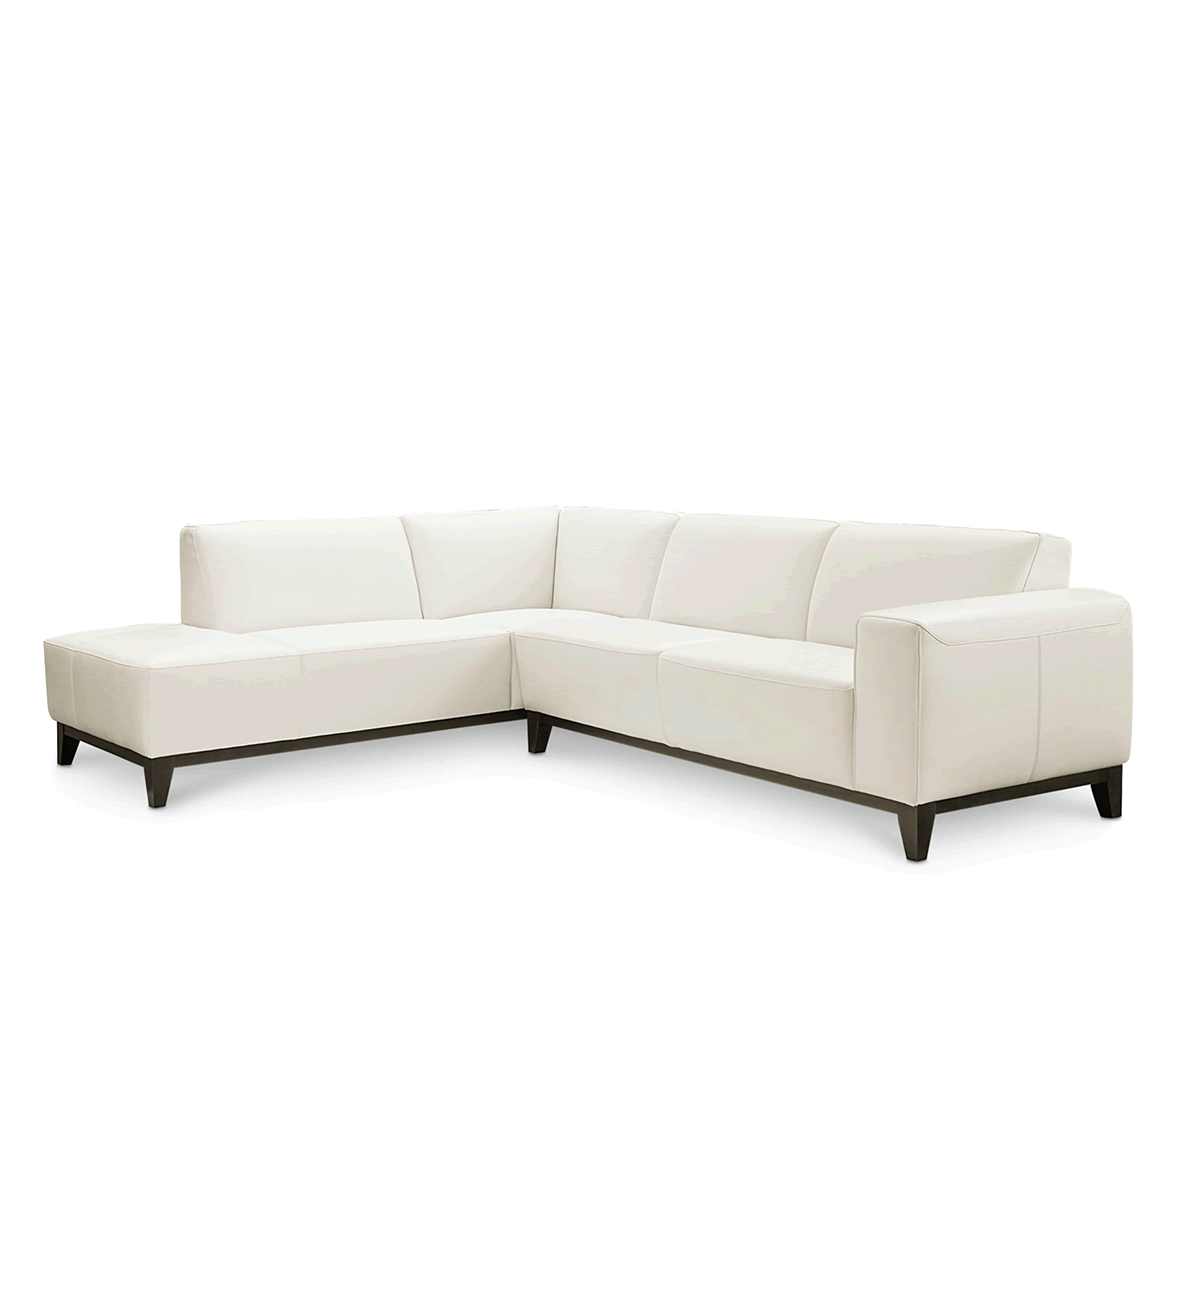 Couches. Leather Sofas Couches